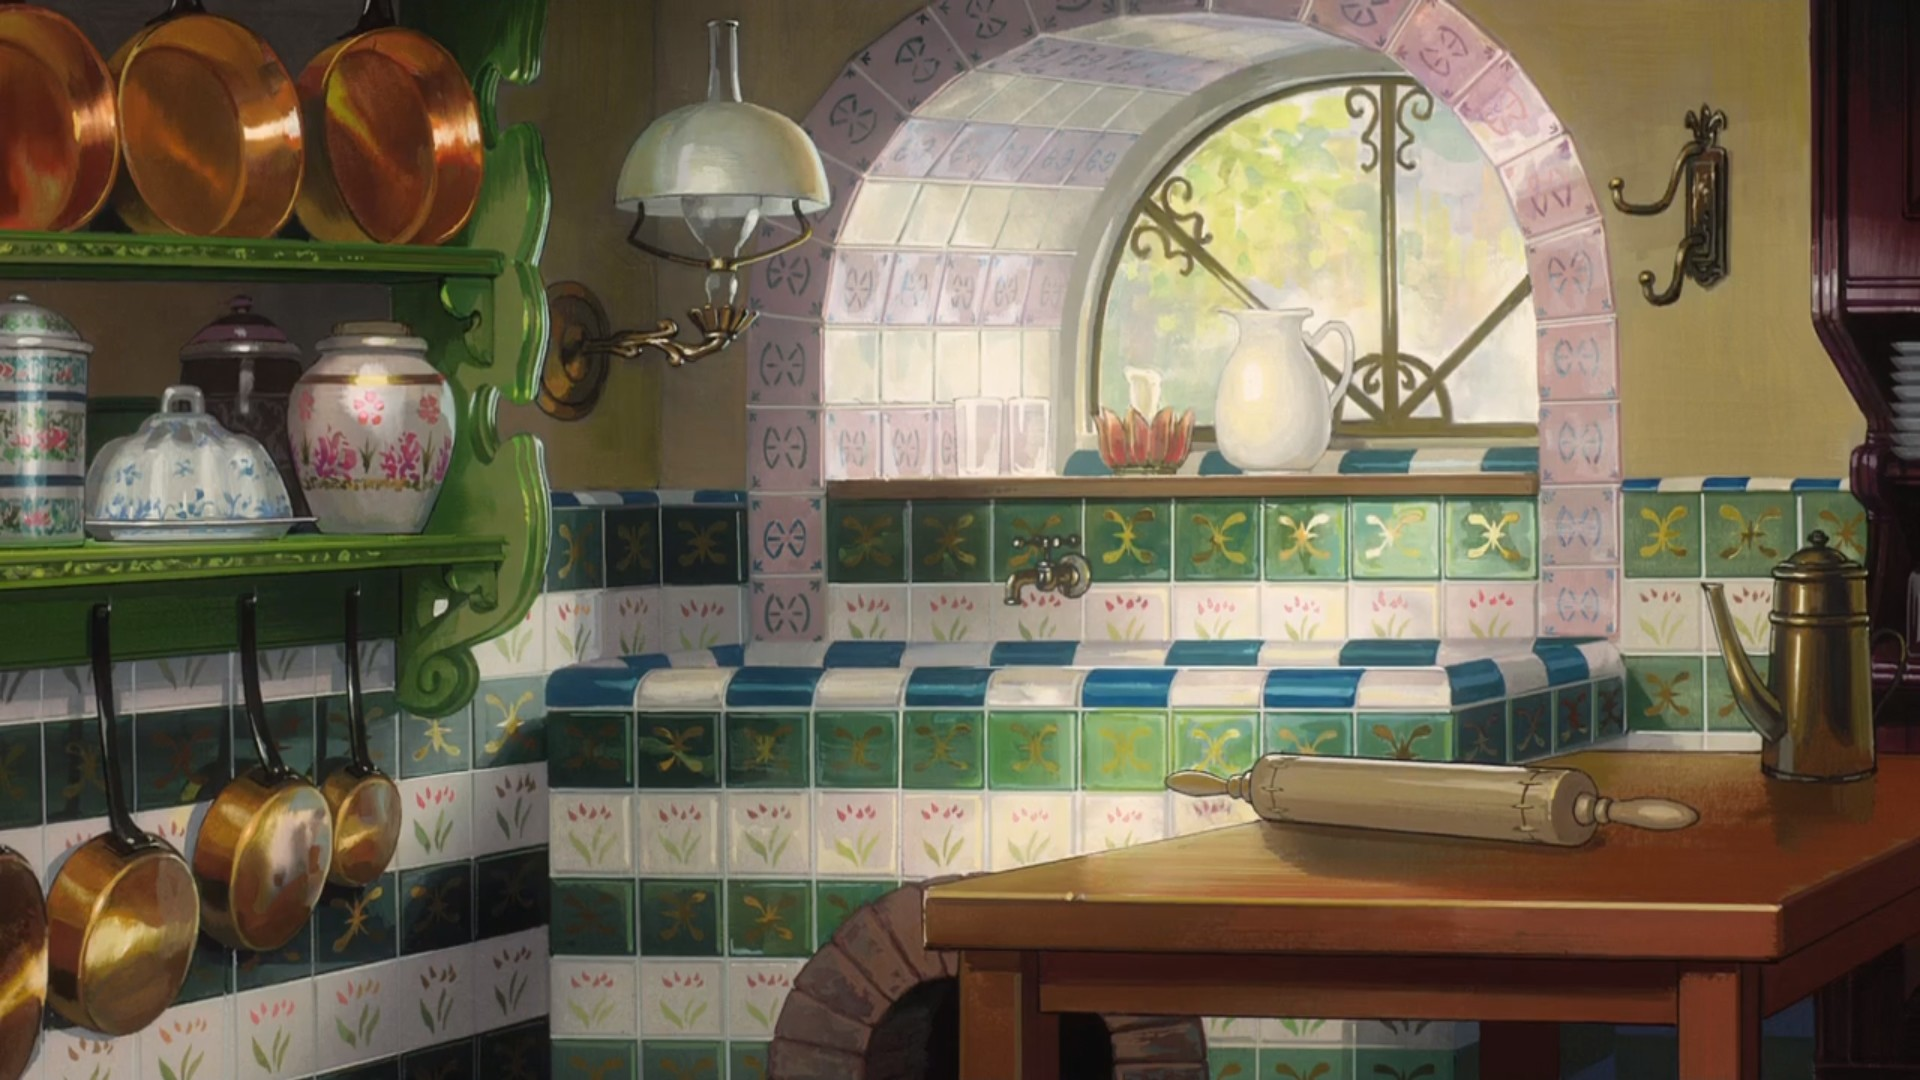 Anime Kitchen a wallpaper